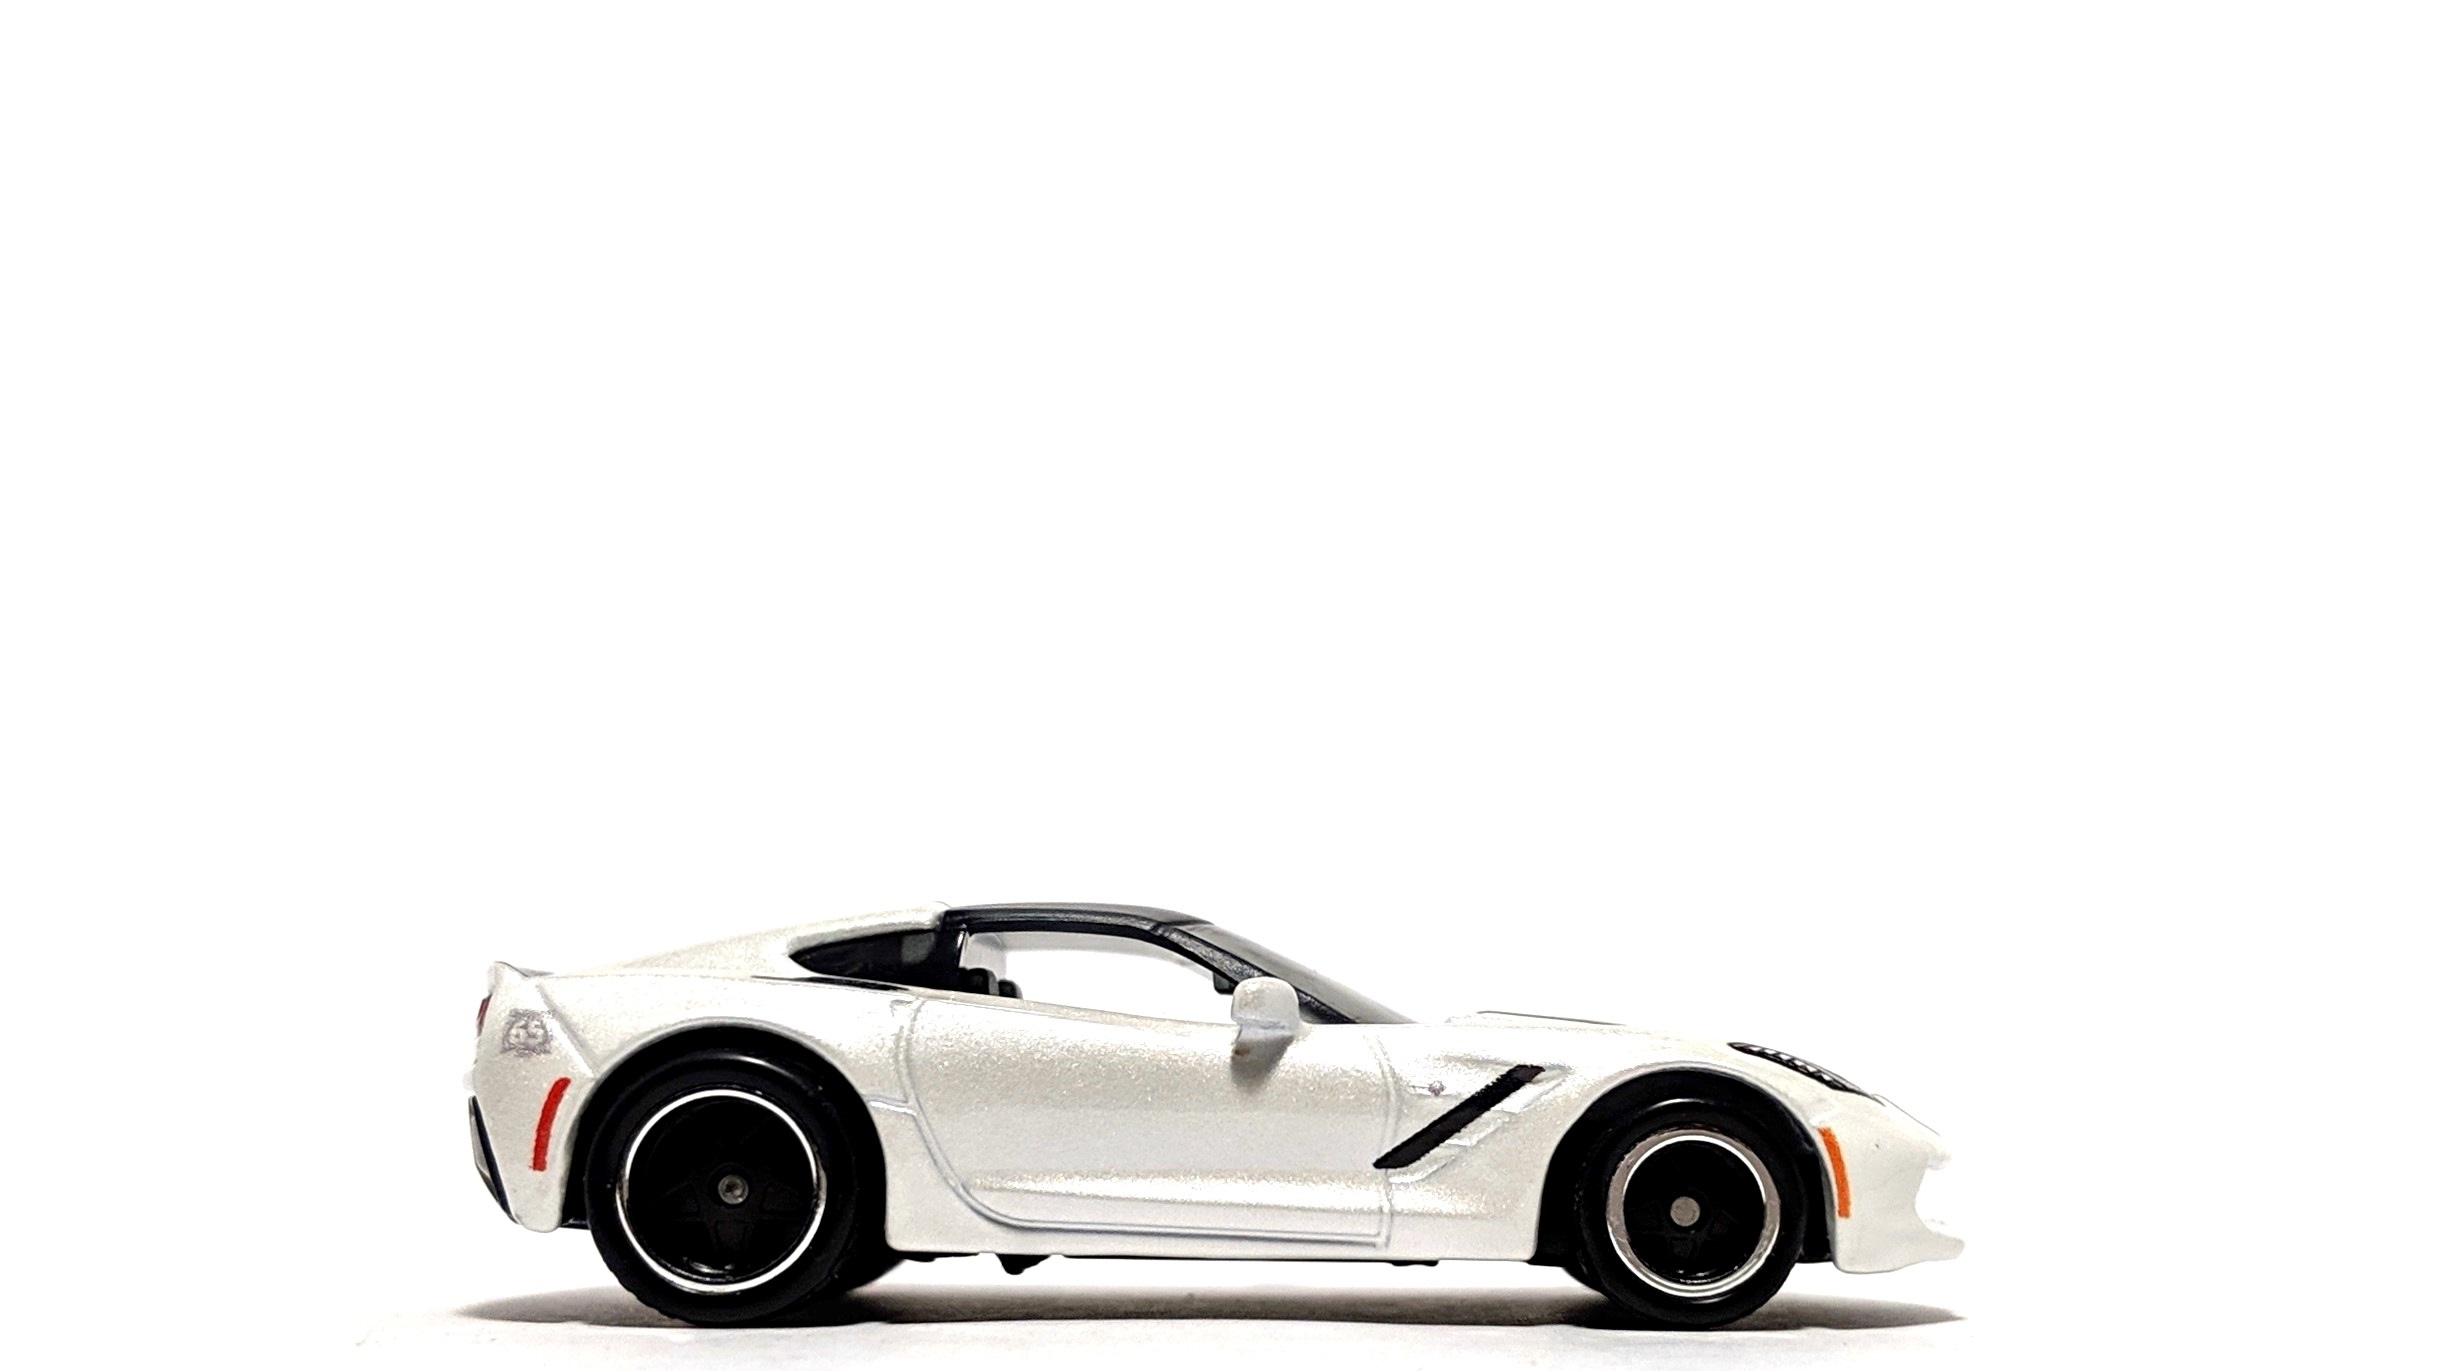 '16 Chevrolet Corvette Stingray - Matchbox 50th Anniversary Superfast